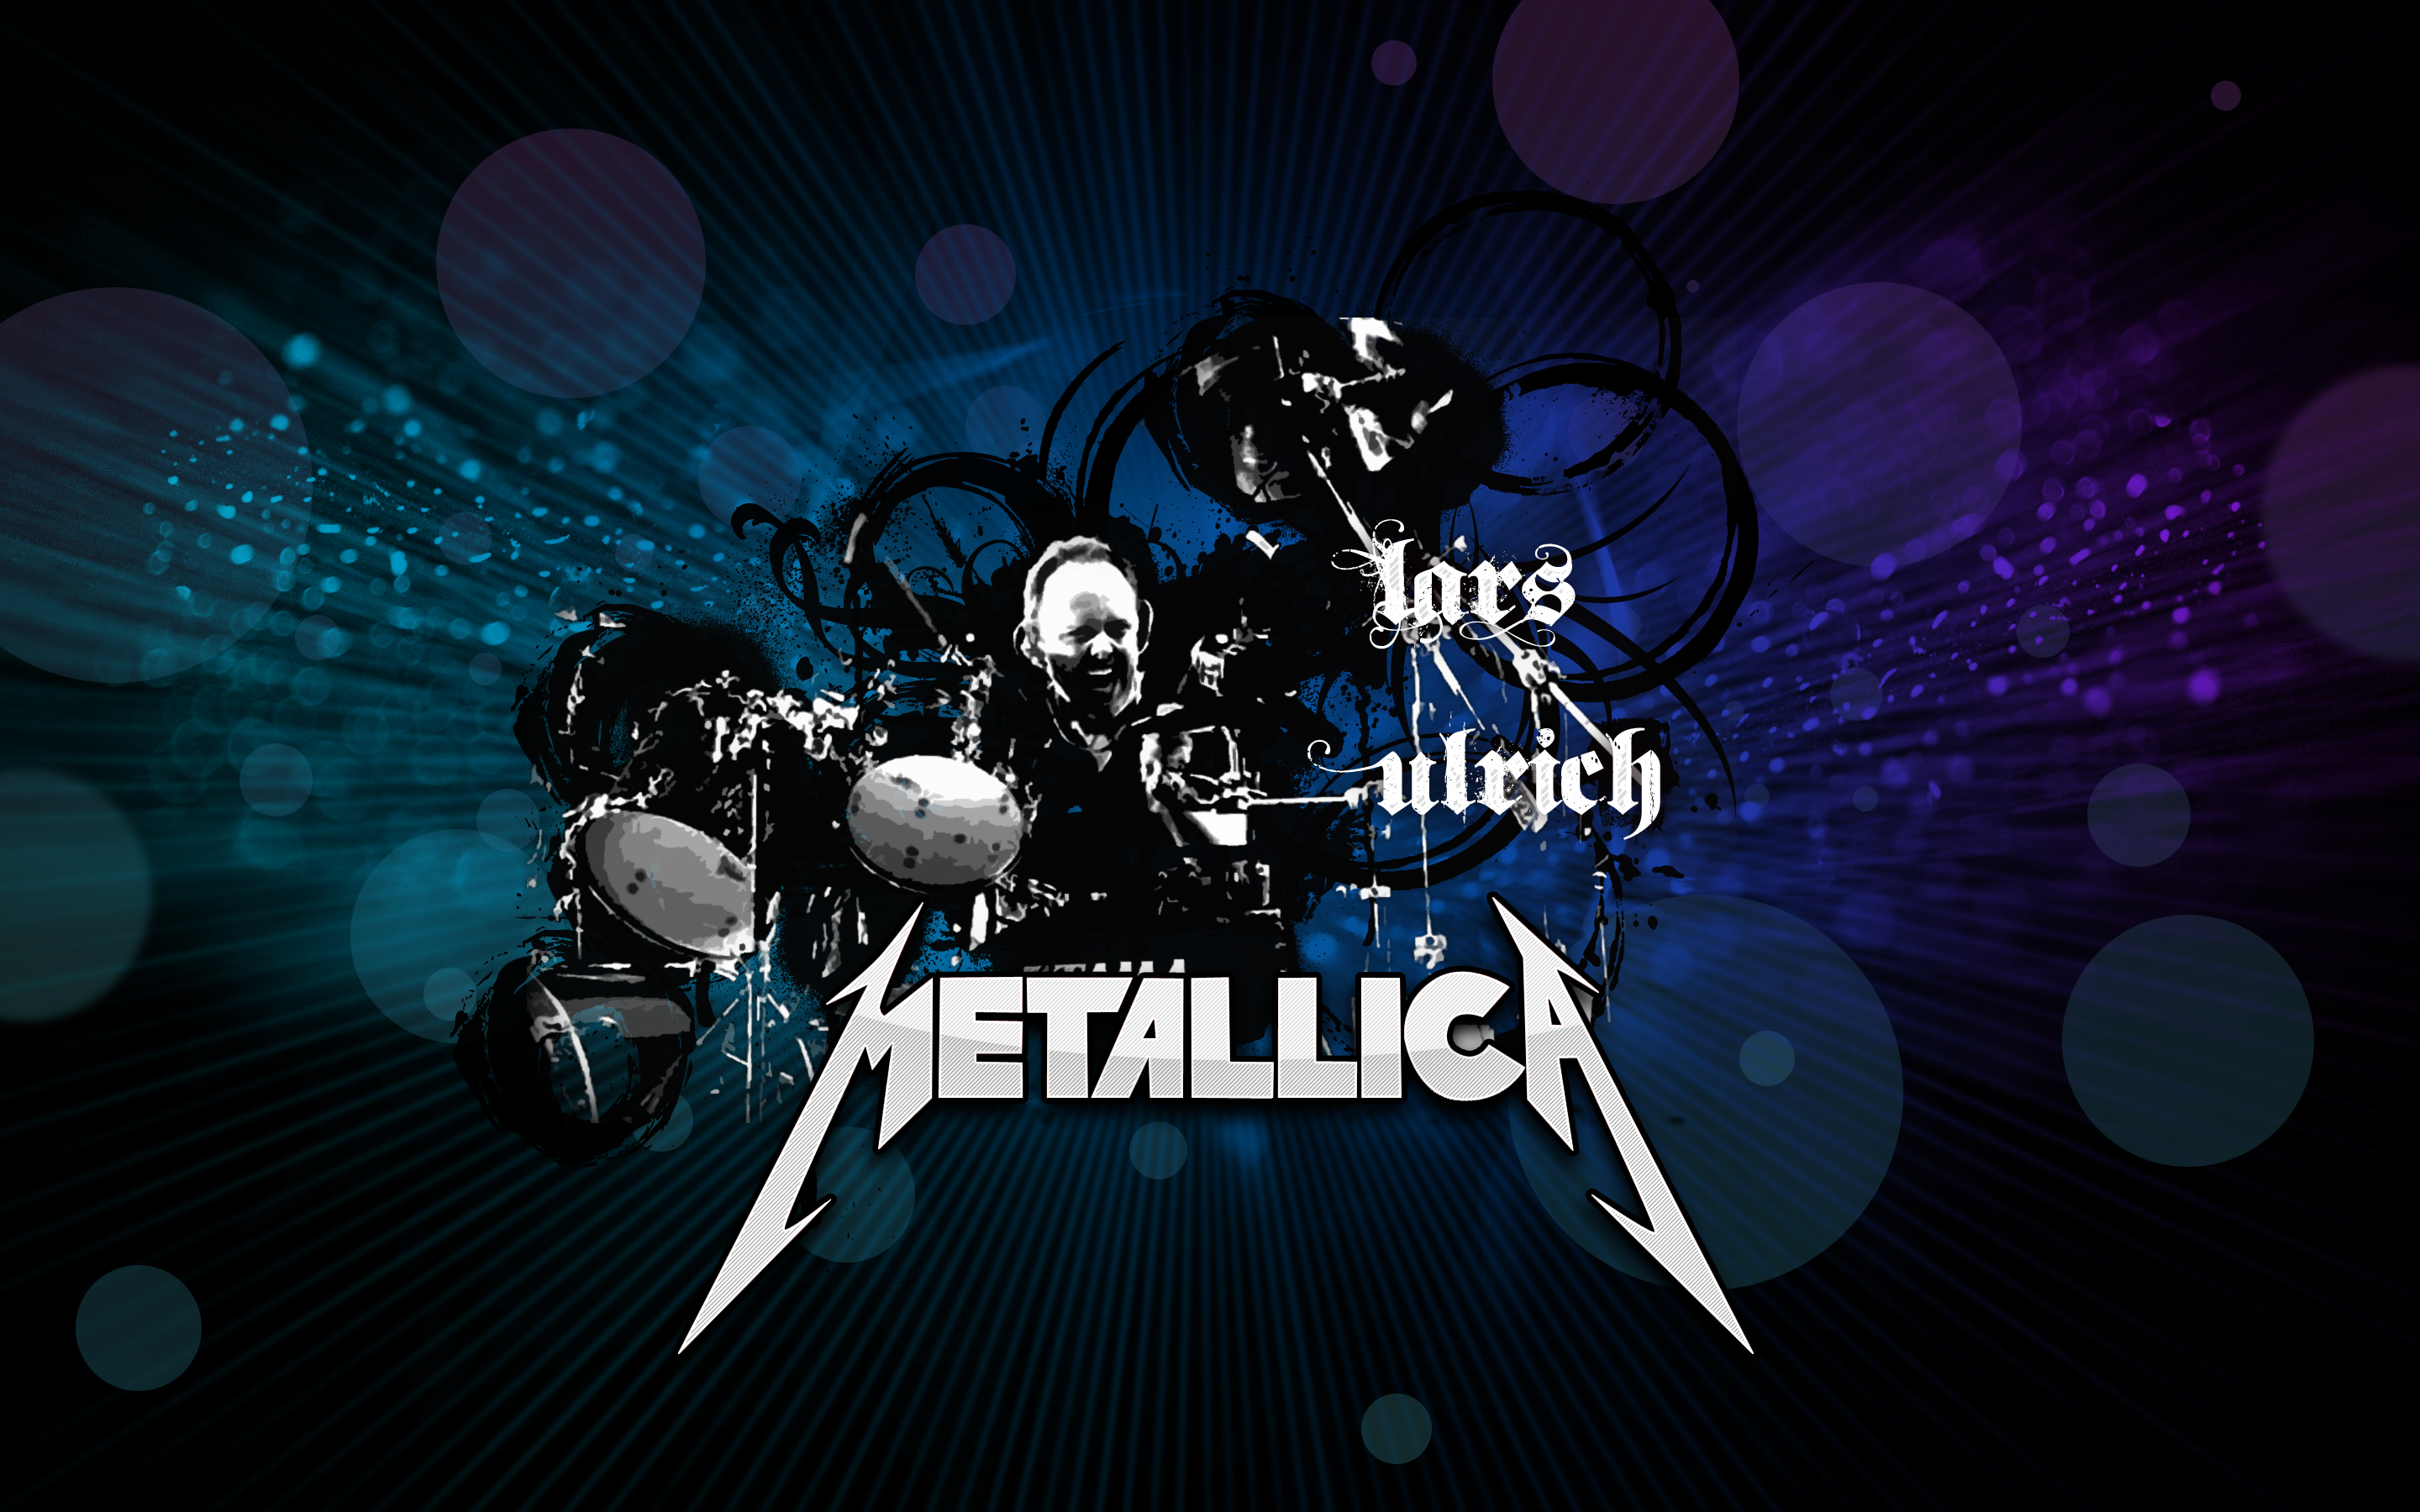 Metallica Wallpapers Backgrounds Pictures Metallica Wallpapers 30 2880x1800